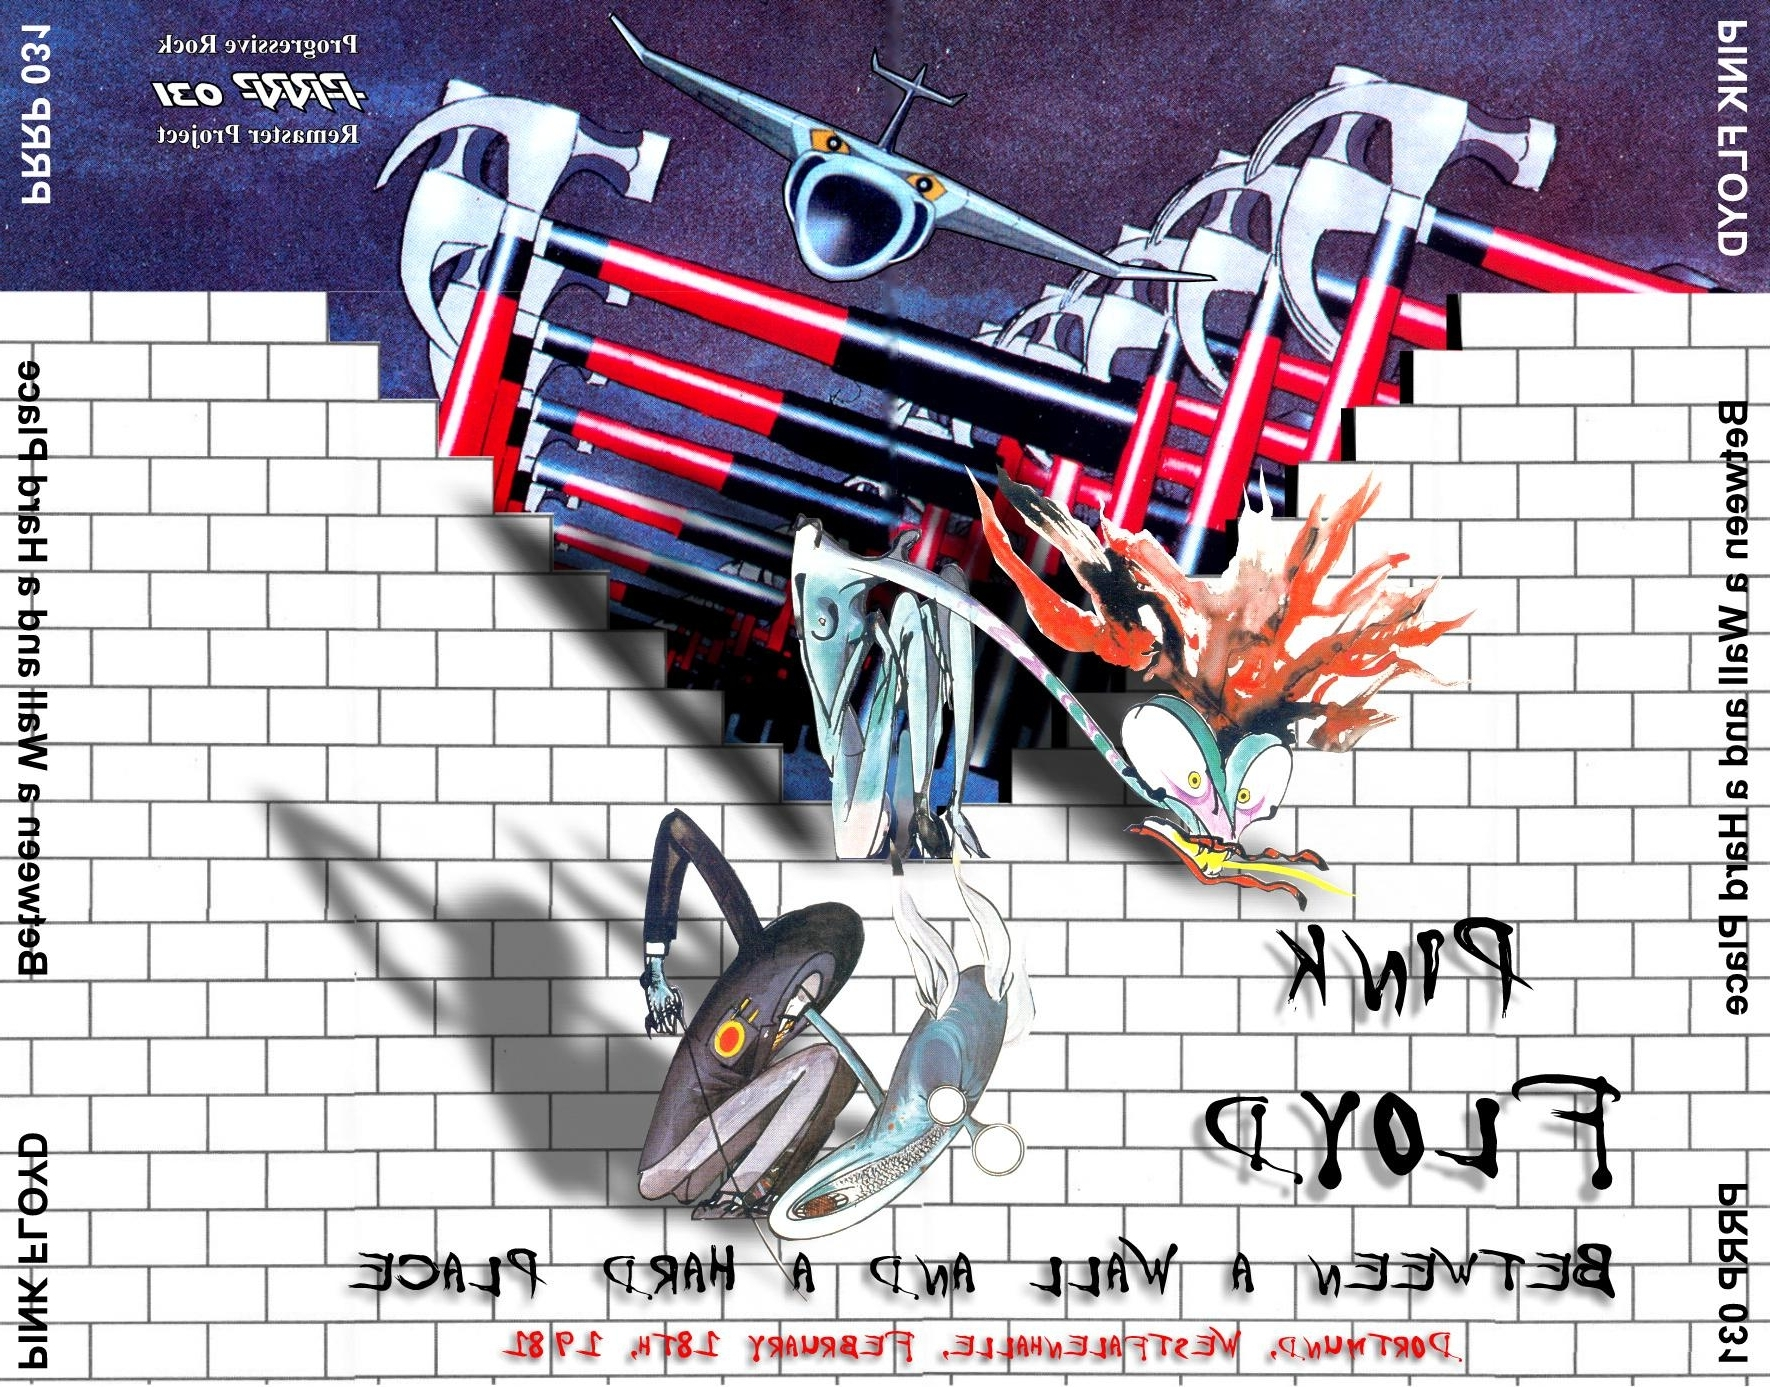 The International Echoes Hub – Lossless Studio And Concert Throughout Well Known Pink Floyd The Wall Art (View 20 of 20)